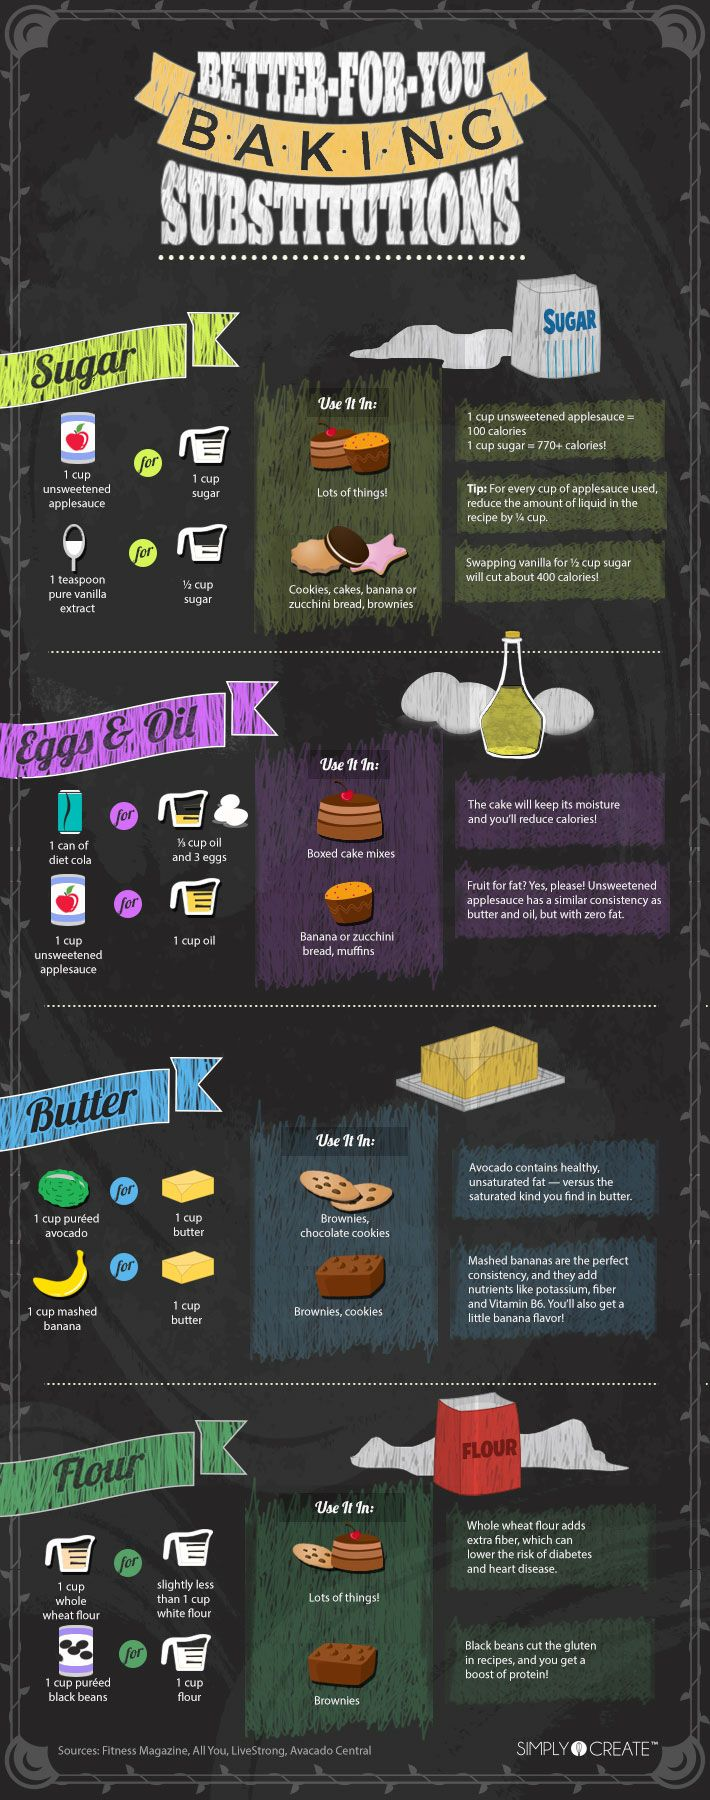 Looking for healthy baking substitutions? This infographic from Simply Create has got you covered, from sugar and fat to eggs, oil and flour.